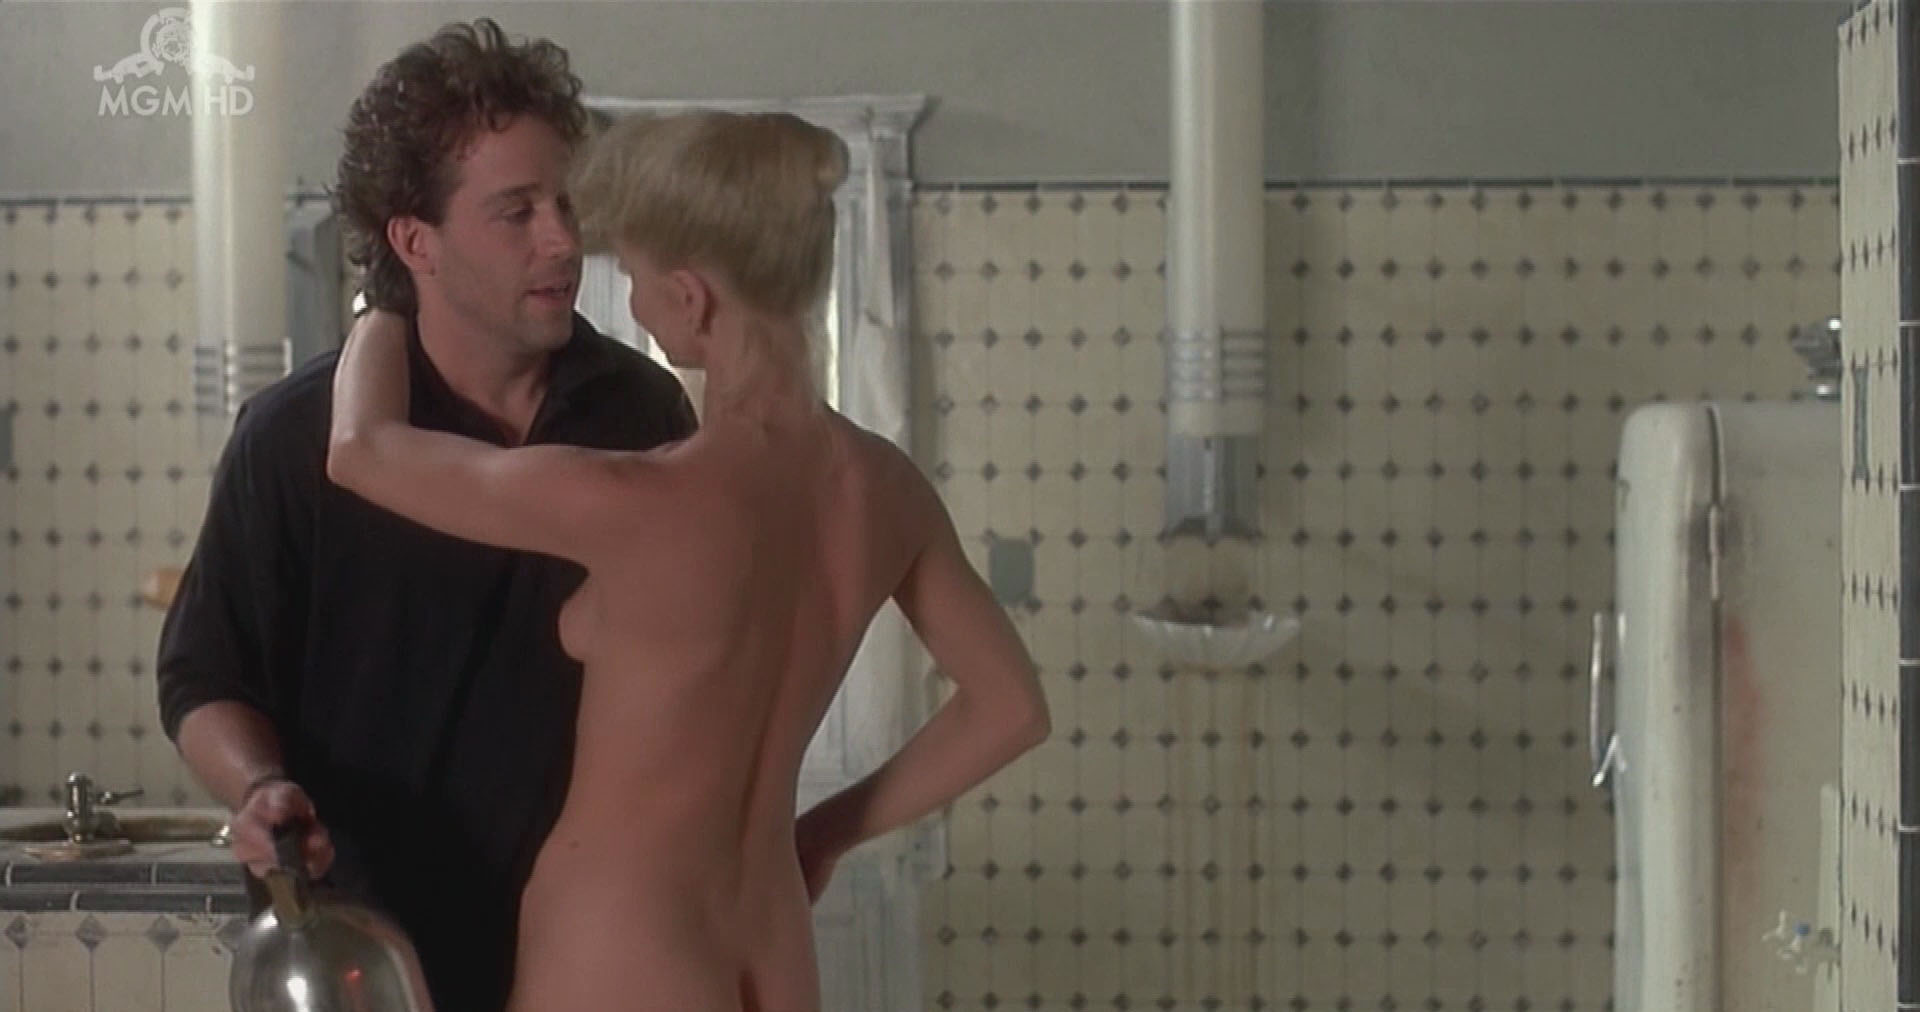 Lisa swayze nude sex mean and